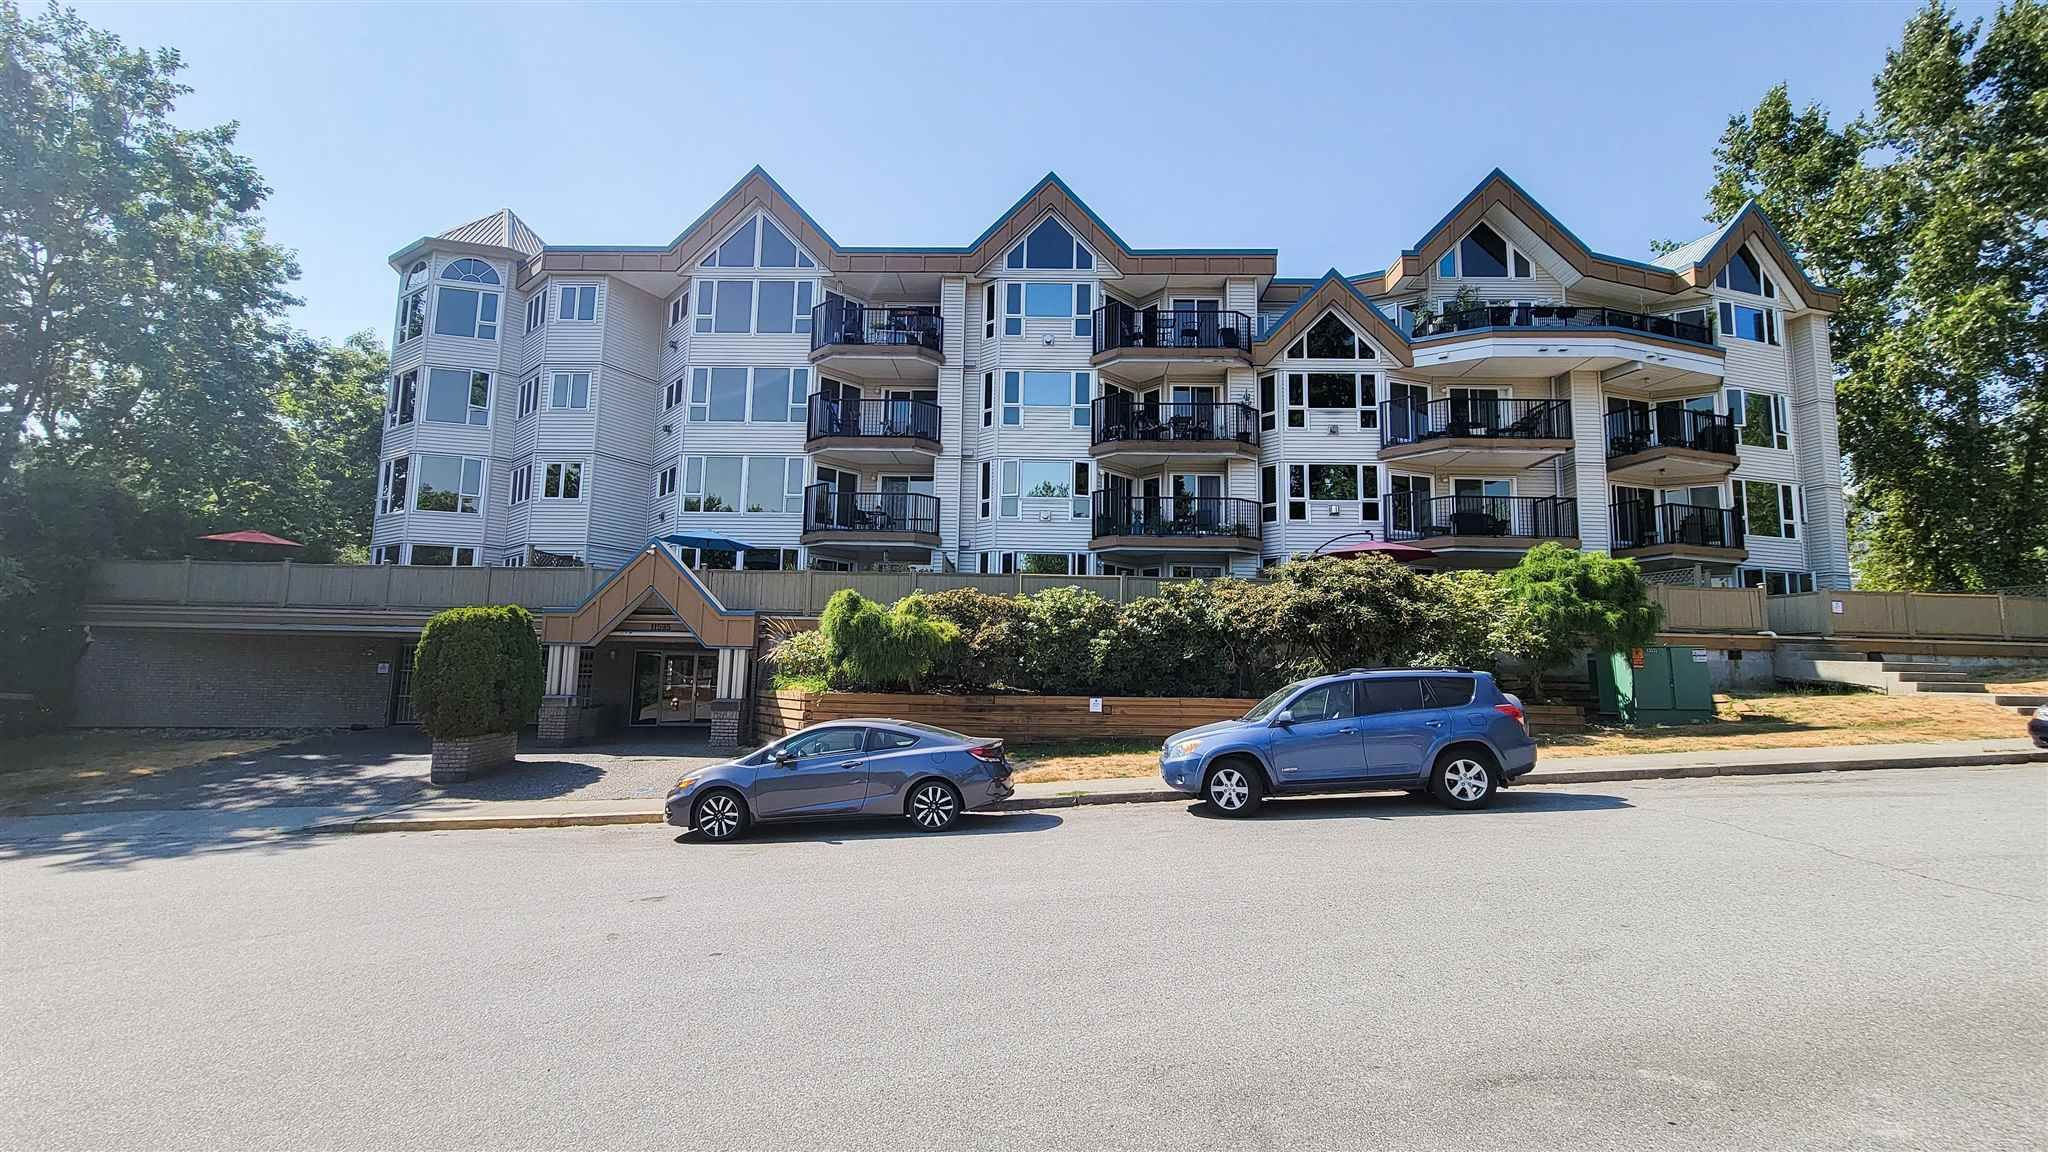 """Main Photo: 113 11595 FRASER Street in Maple Ridge: East Central Condo for sale in """"BRICKWOOD PLACE"""" : MLS®# R2607615"""